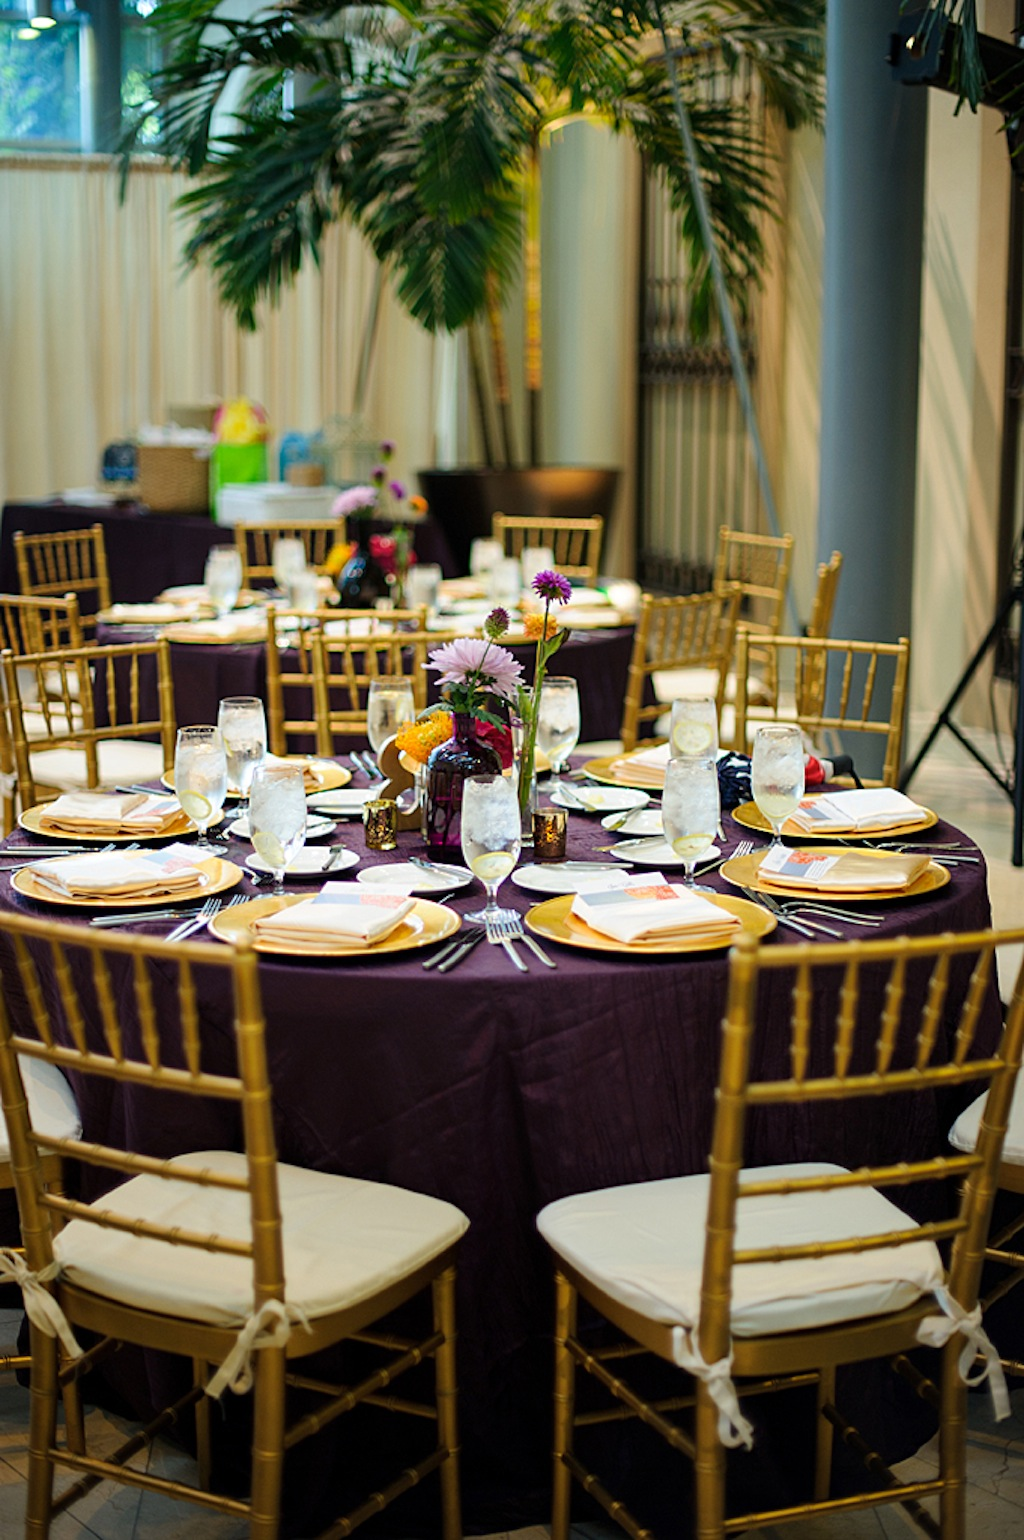 St. Pete Museum of Art Wedding Reception with Purple Linens and Gold Chargers and Gold Chiavari Chairs